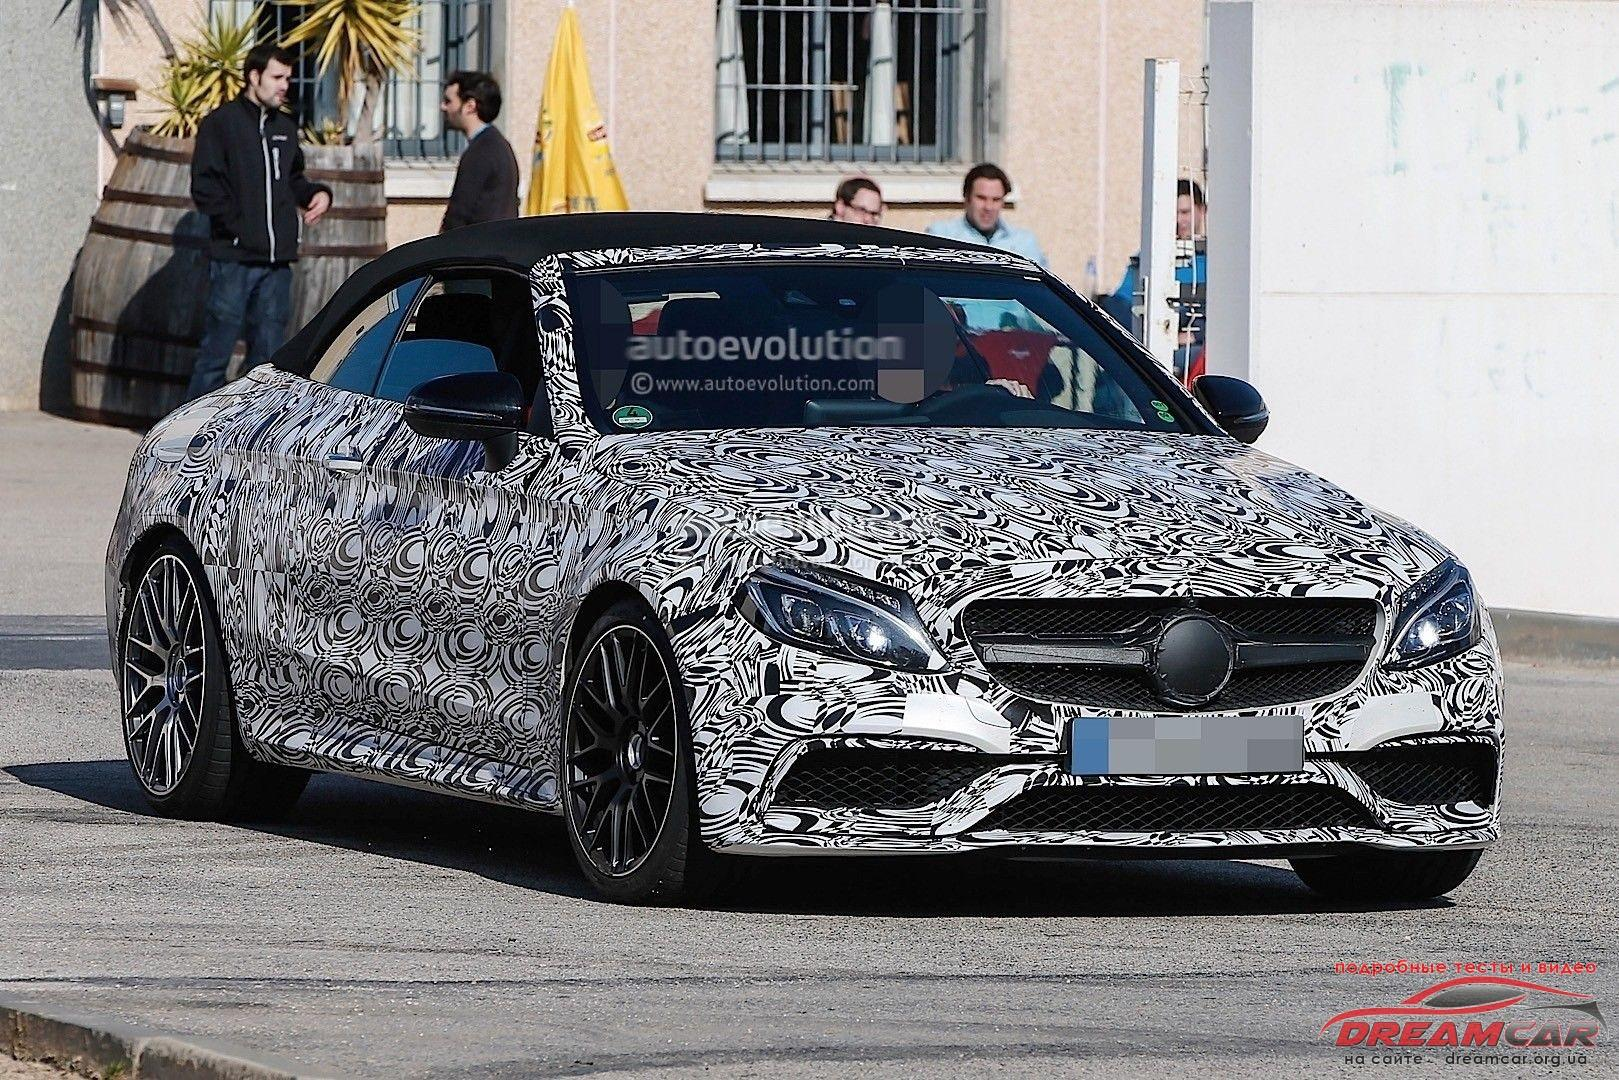 mercedes-amg-c63-luxury-car-news-reviews-spy-shots-automotive-wiring